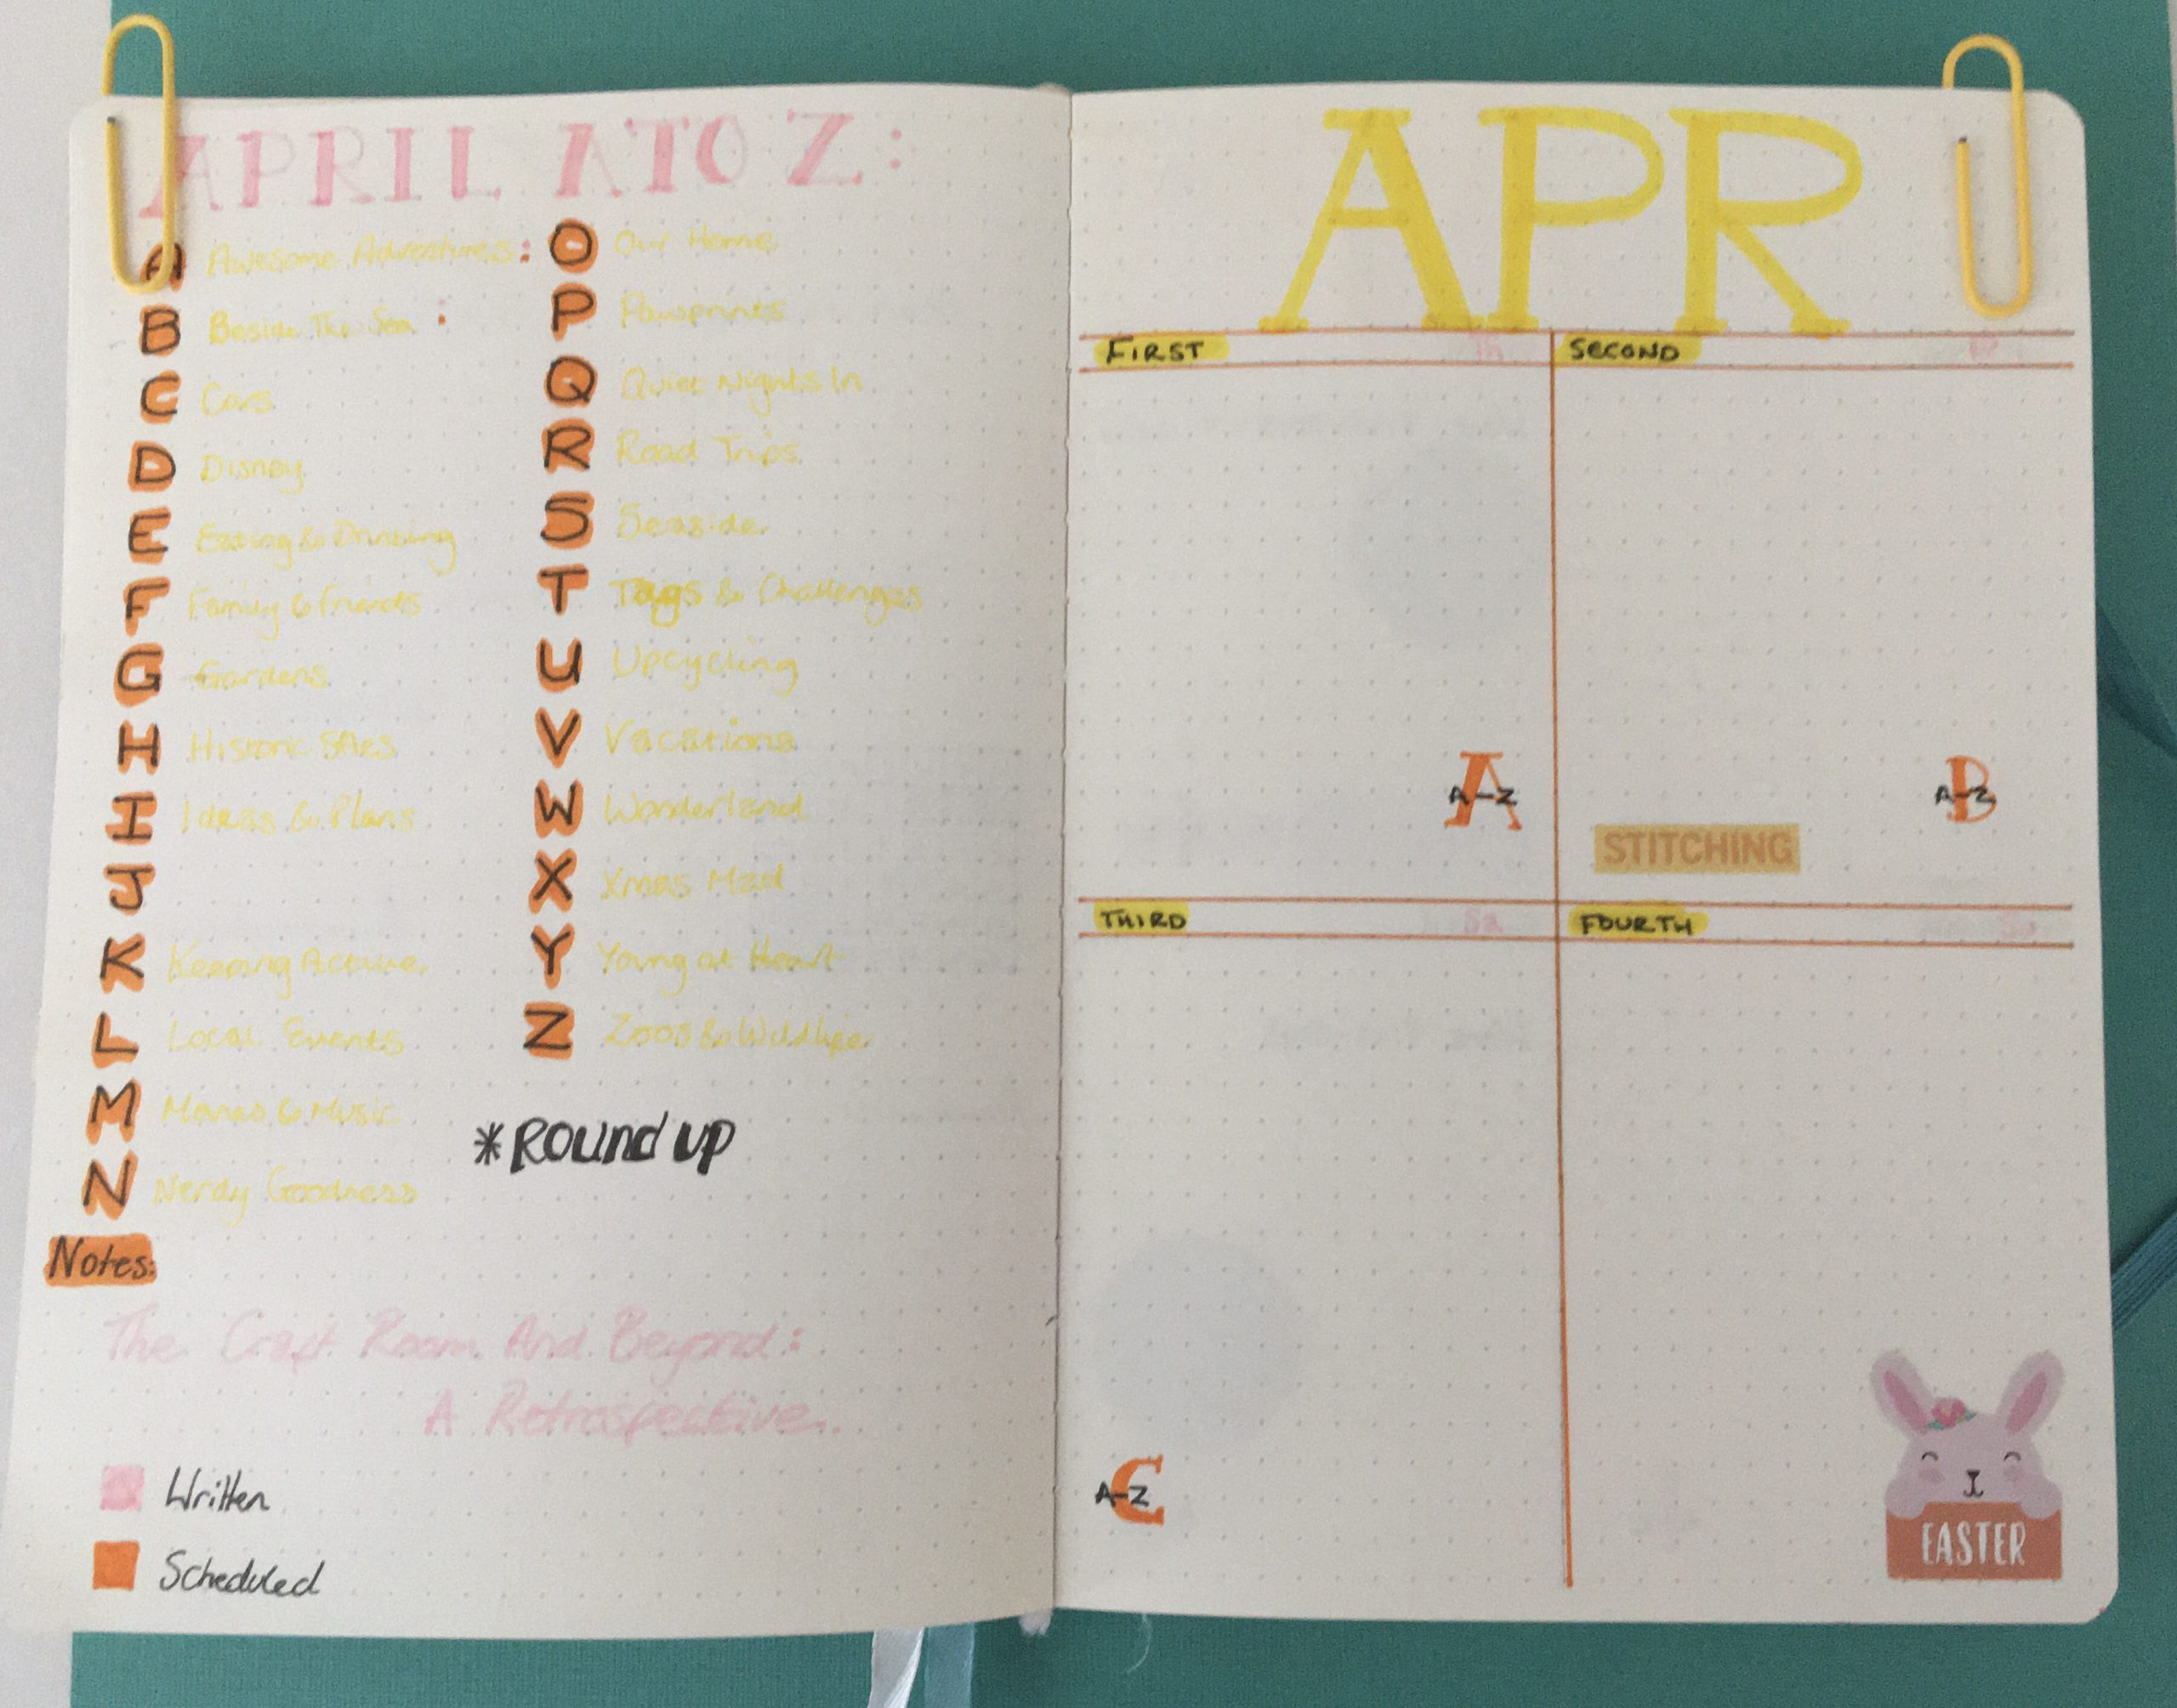 April Bujo  - Weekly Spread (ideas and plans)